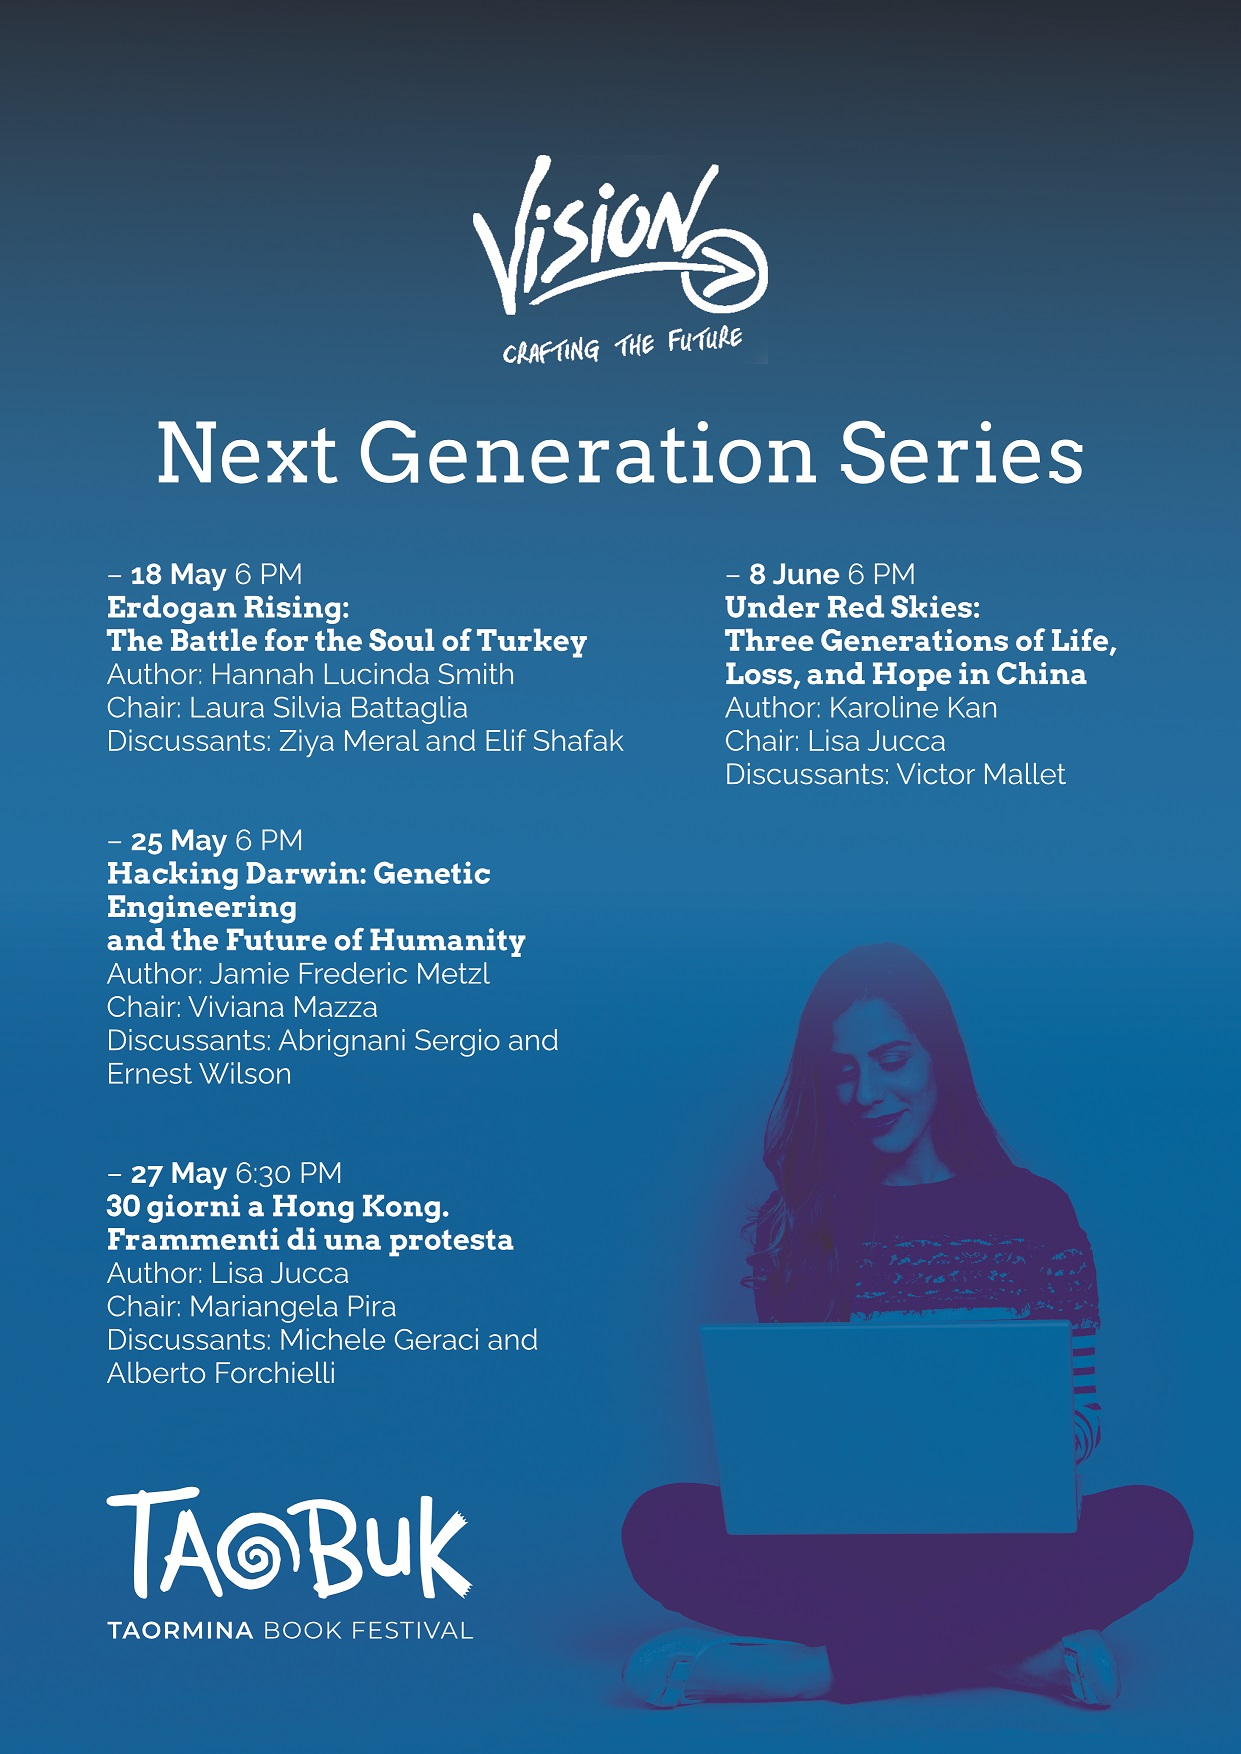 Next Generation Series